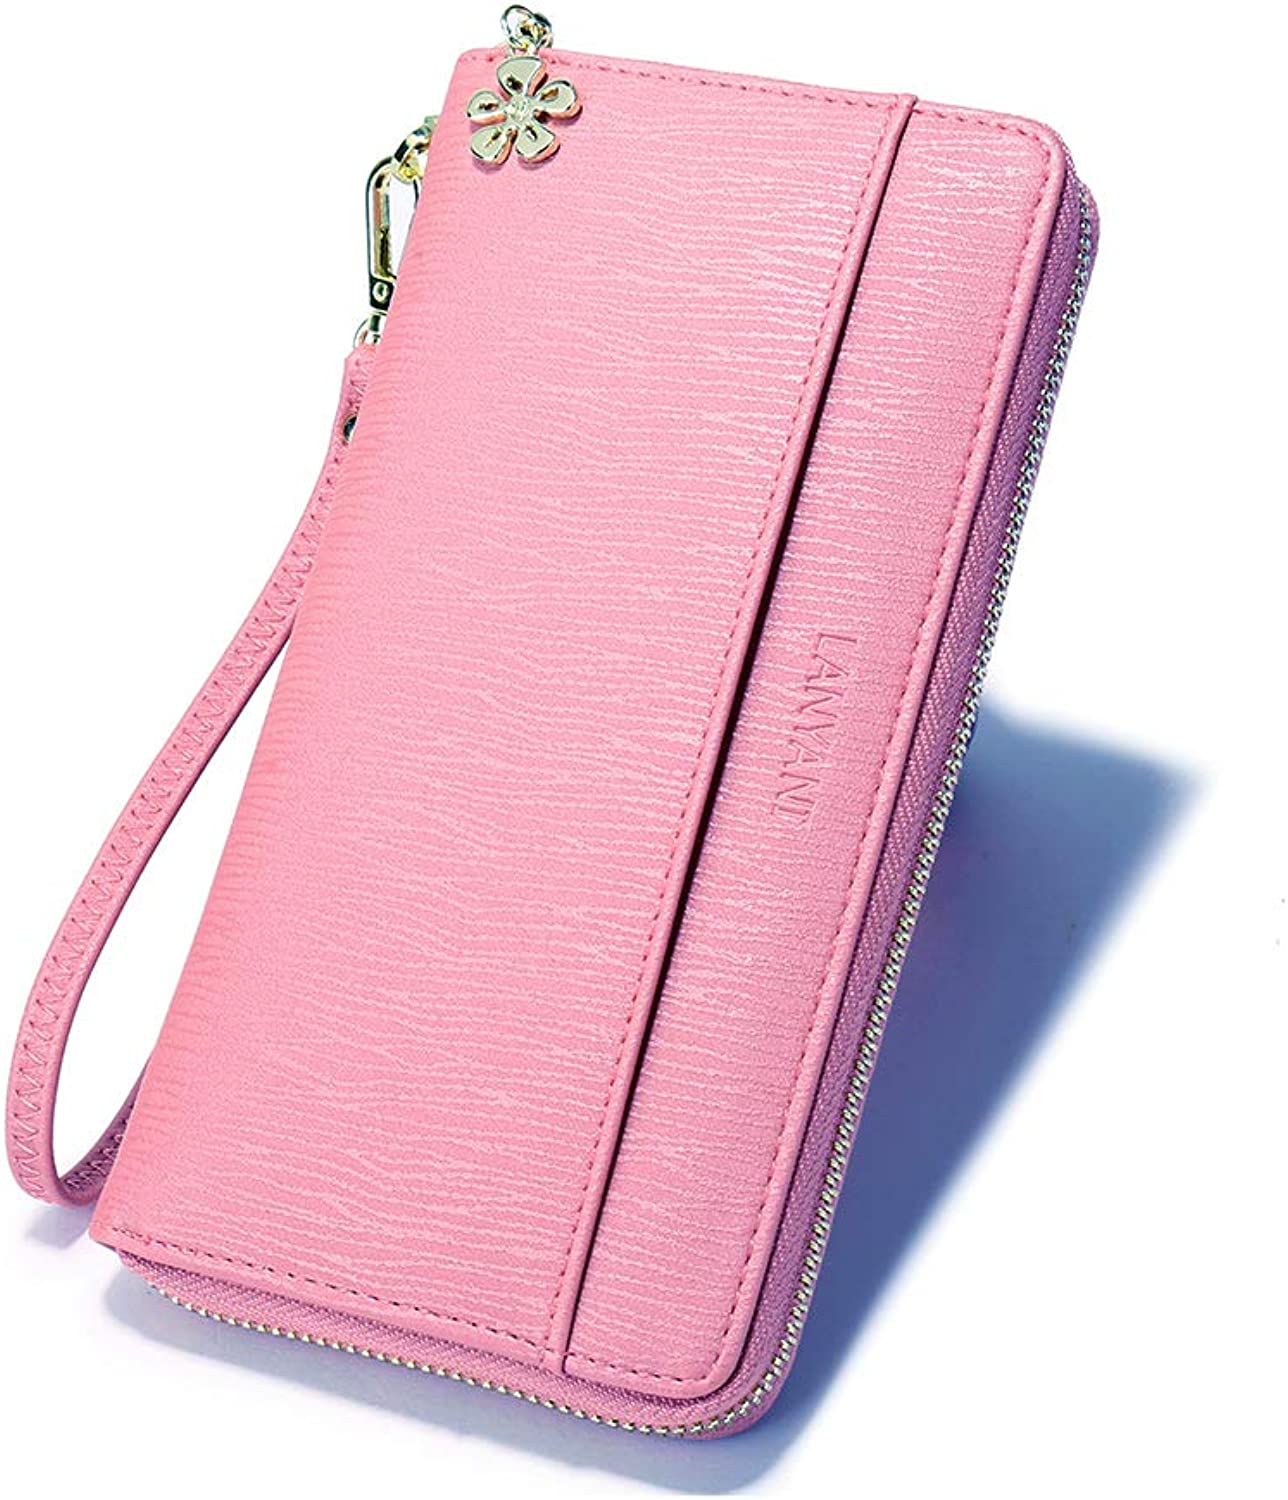 Large Wallets for Women ladies Clutch Phone Holder Card Organizer Girls PU Leather Wristlet Purse with Wrist Strap Zipper closure purle